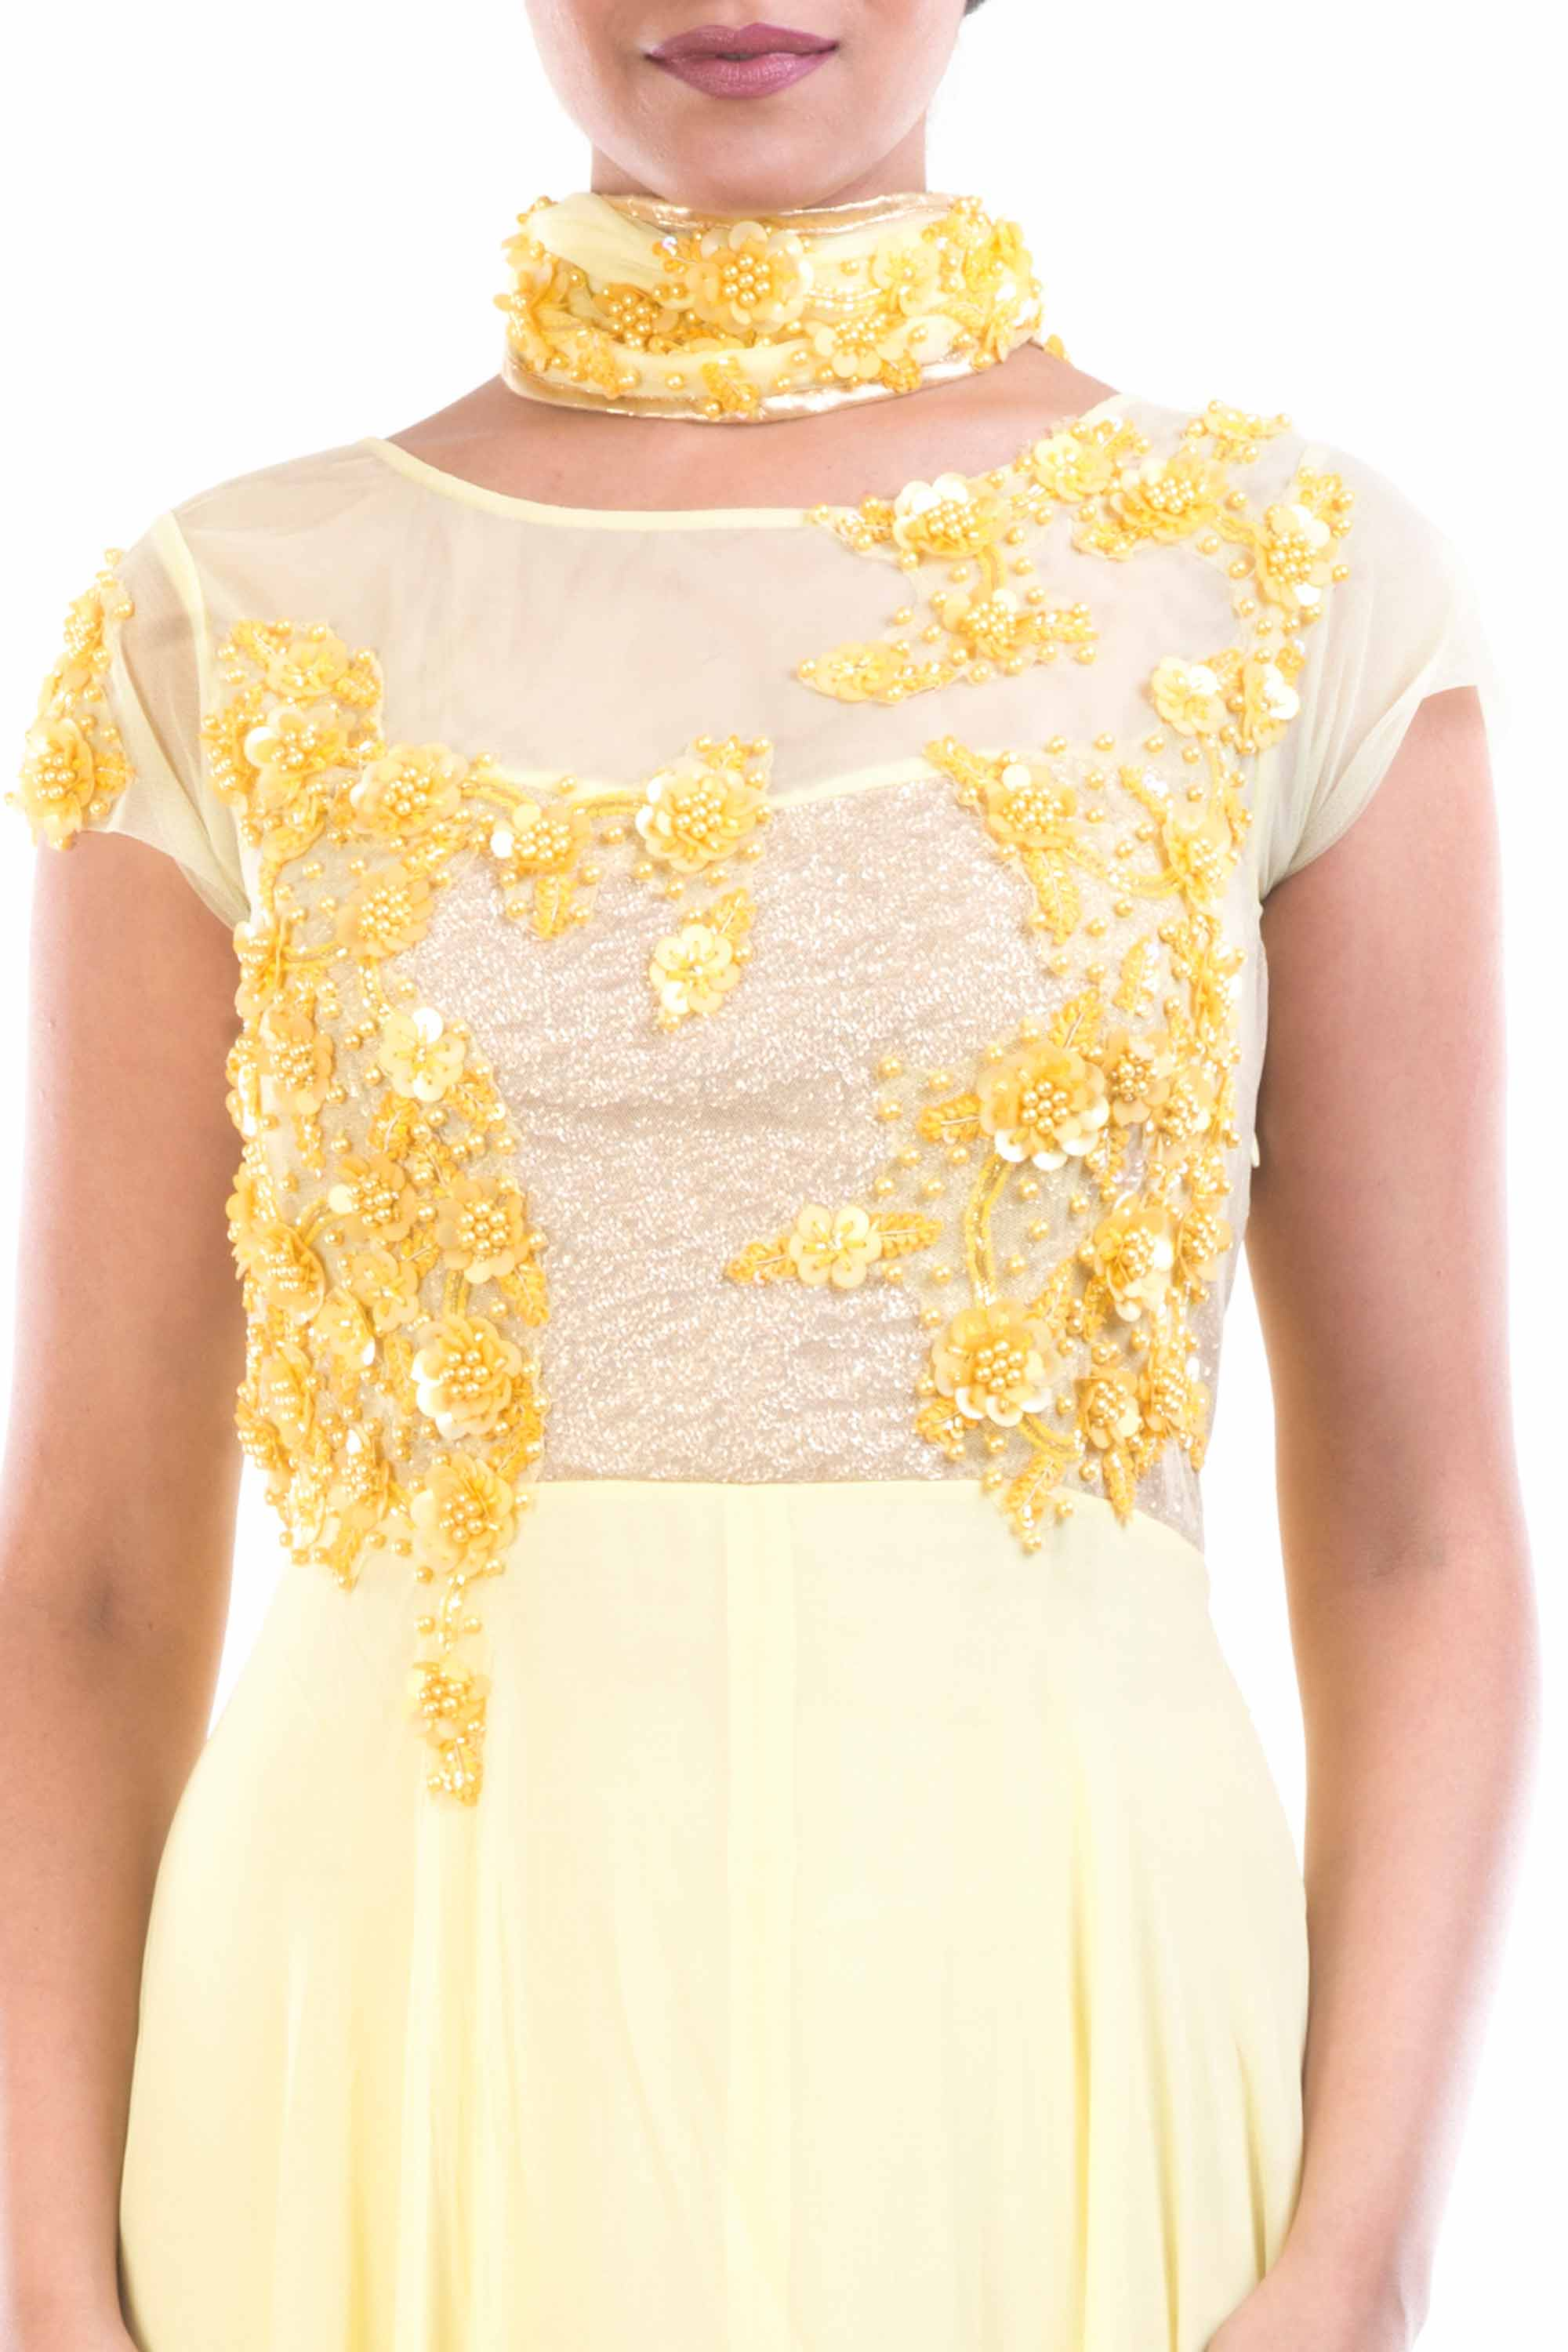 Lemon Yellow Georgette Suit Closeup